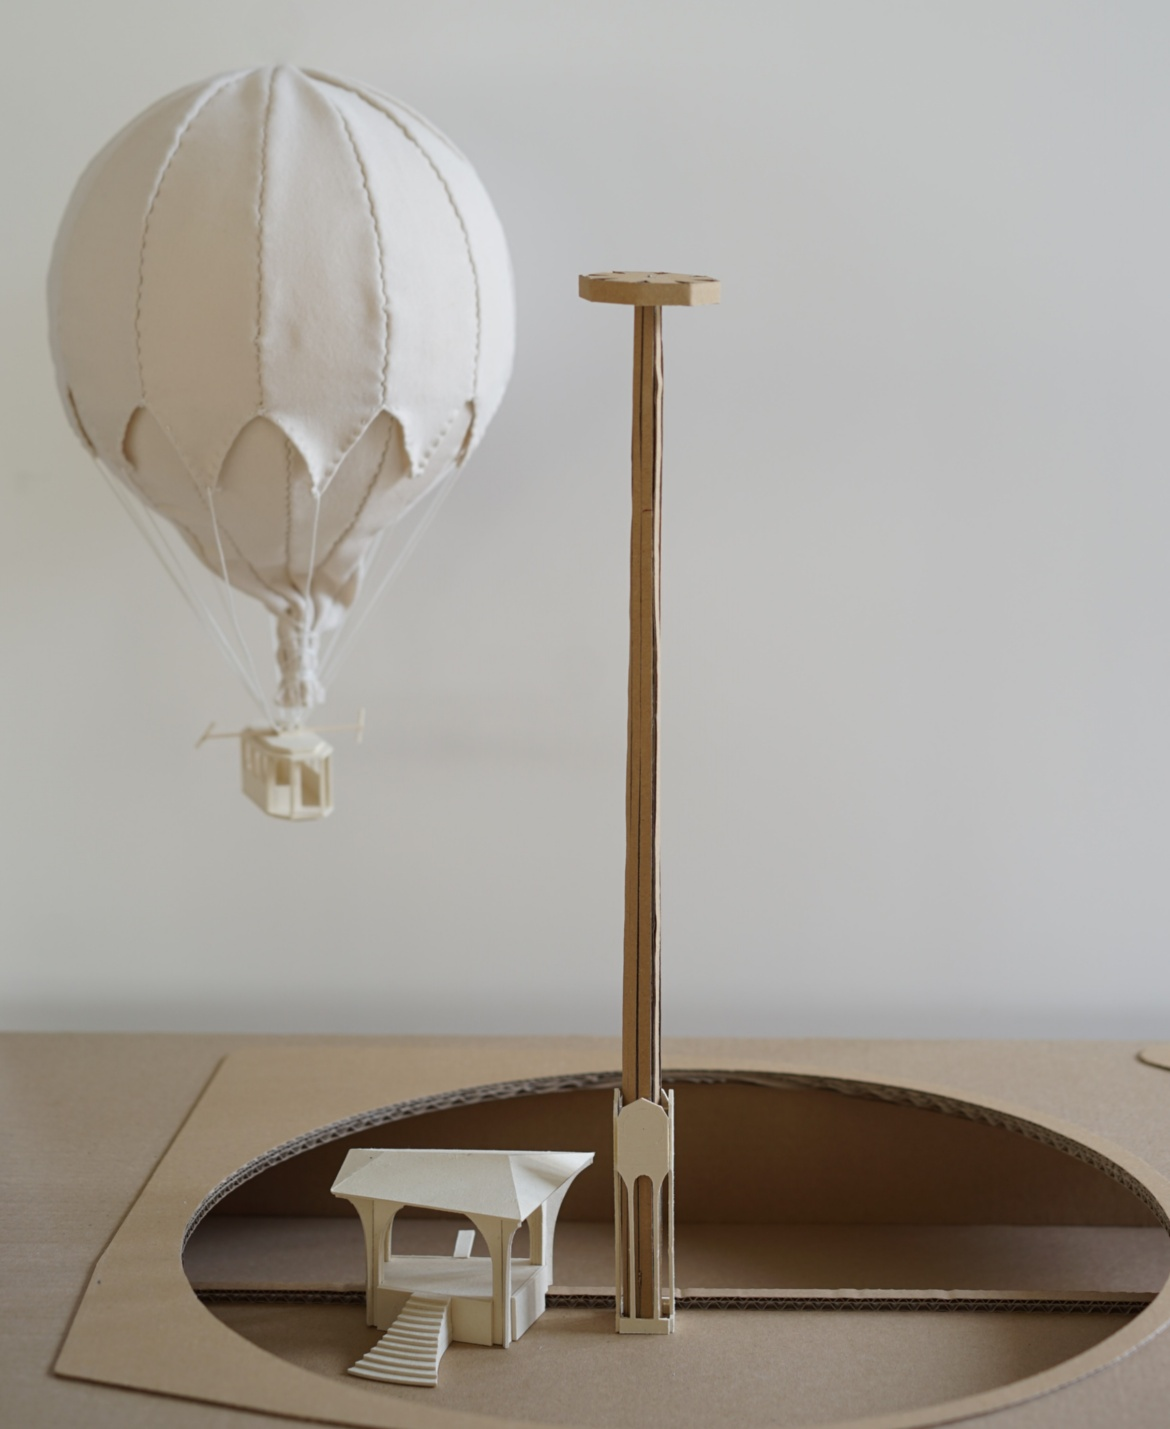 Model made of fabric and cardboard showing the hot air balloon with gondola, suspended from a vertical pole device.